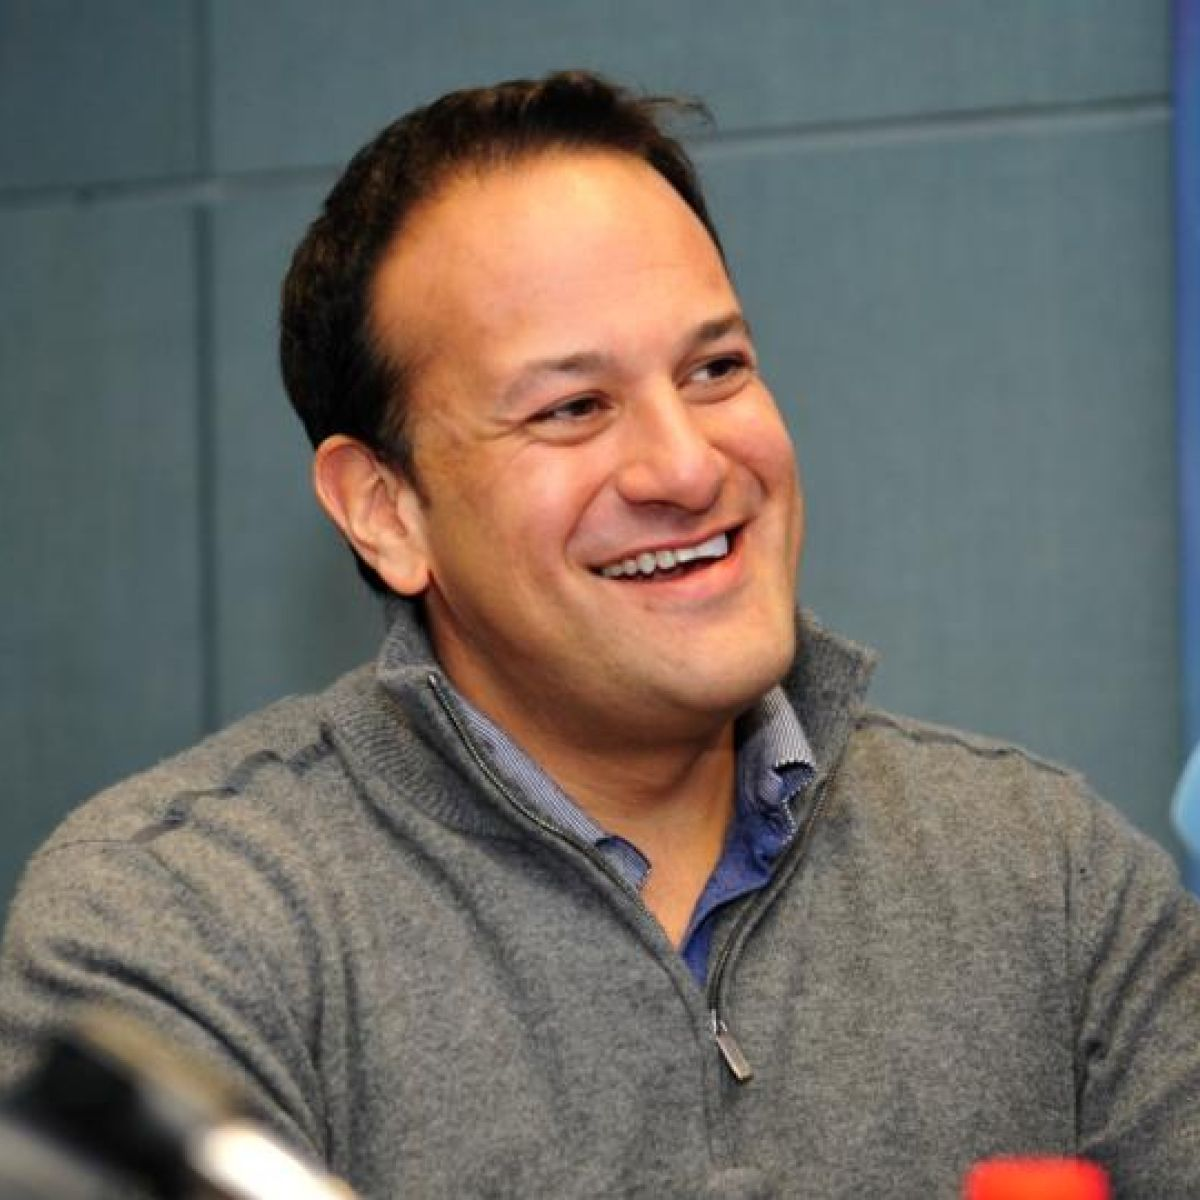 Leo Varadkar takes a stand on the same-sex marriage referendum